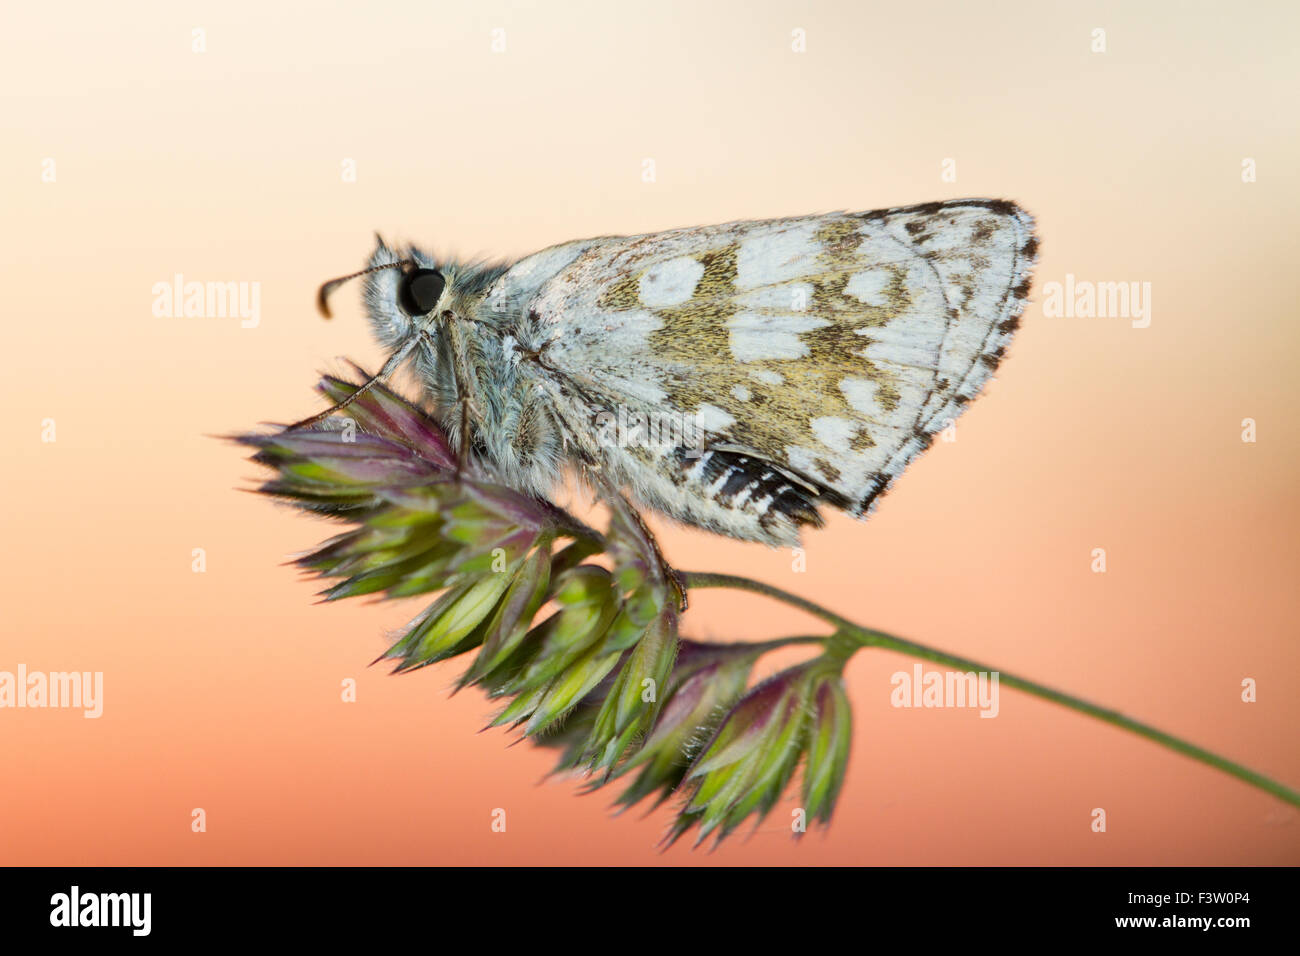 Safflower Skipper butterfly (Pyrgus carthami) adult roosting at sunset. Causse de Gramat, Lot region, France. May. - Stock Image